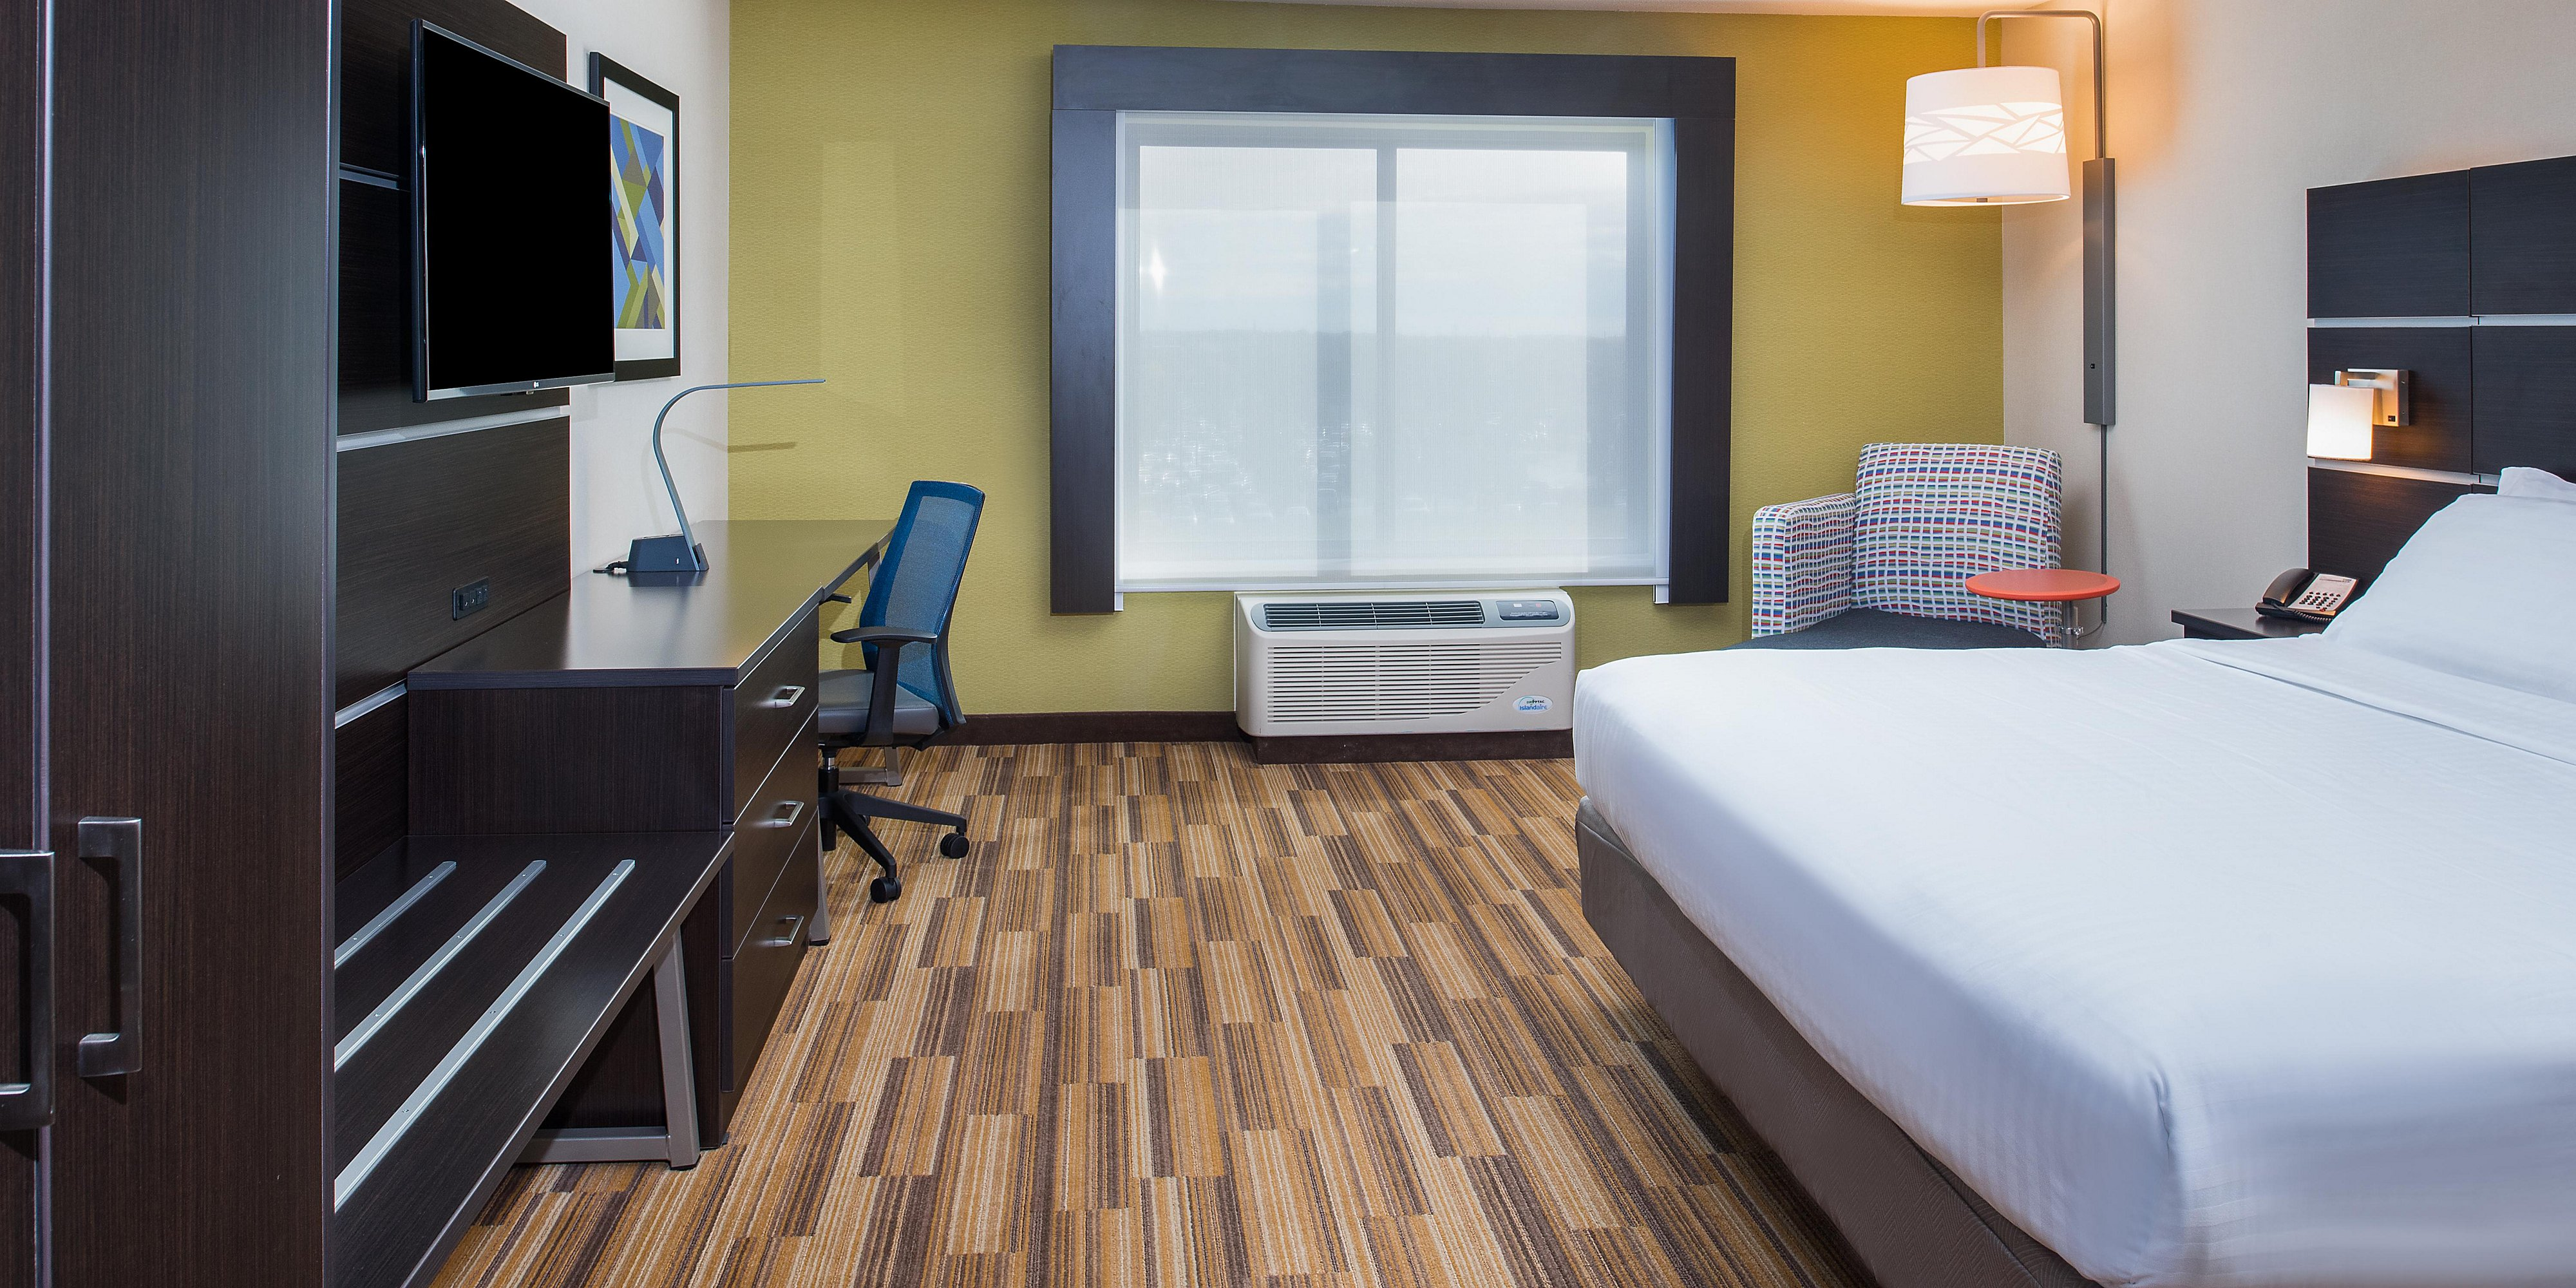 holiday-inn-express-and-suites-bismarck-4753807766-2x1